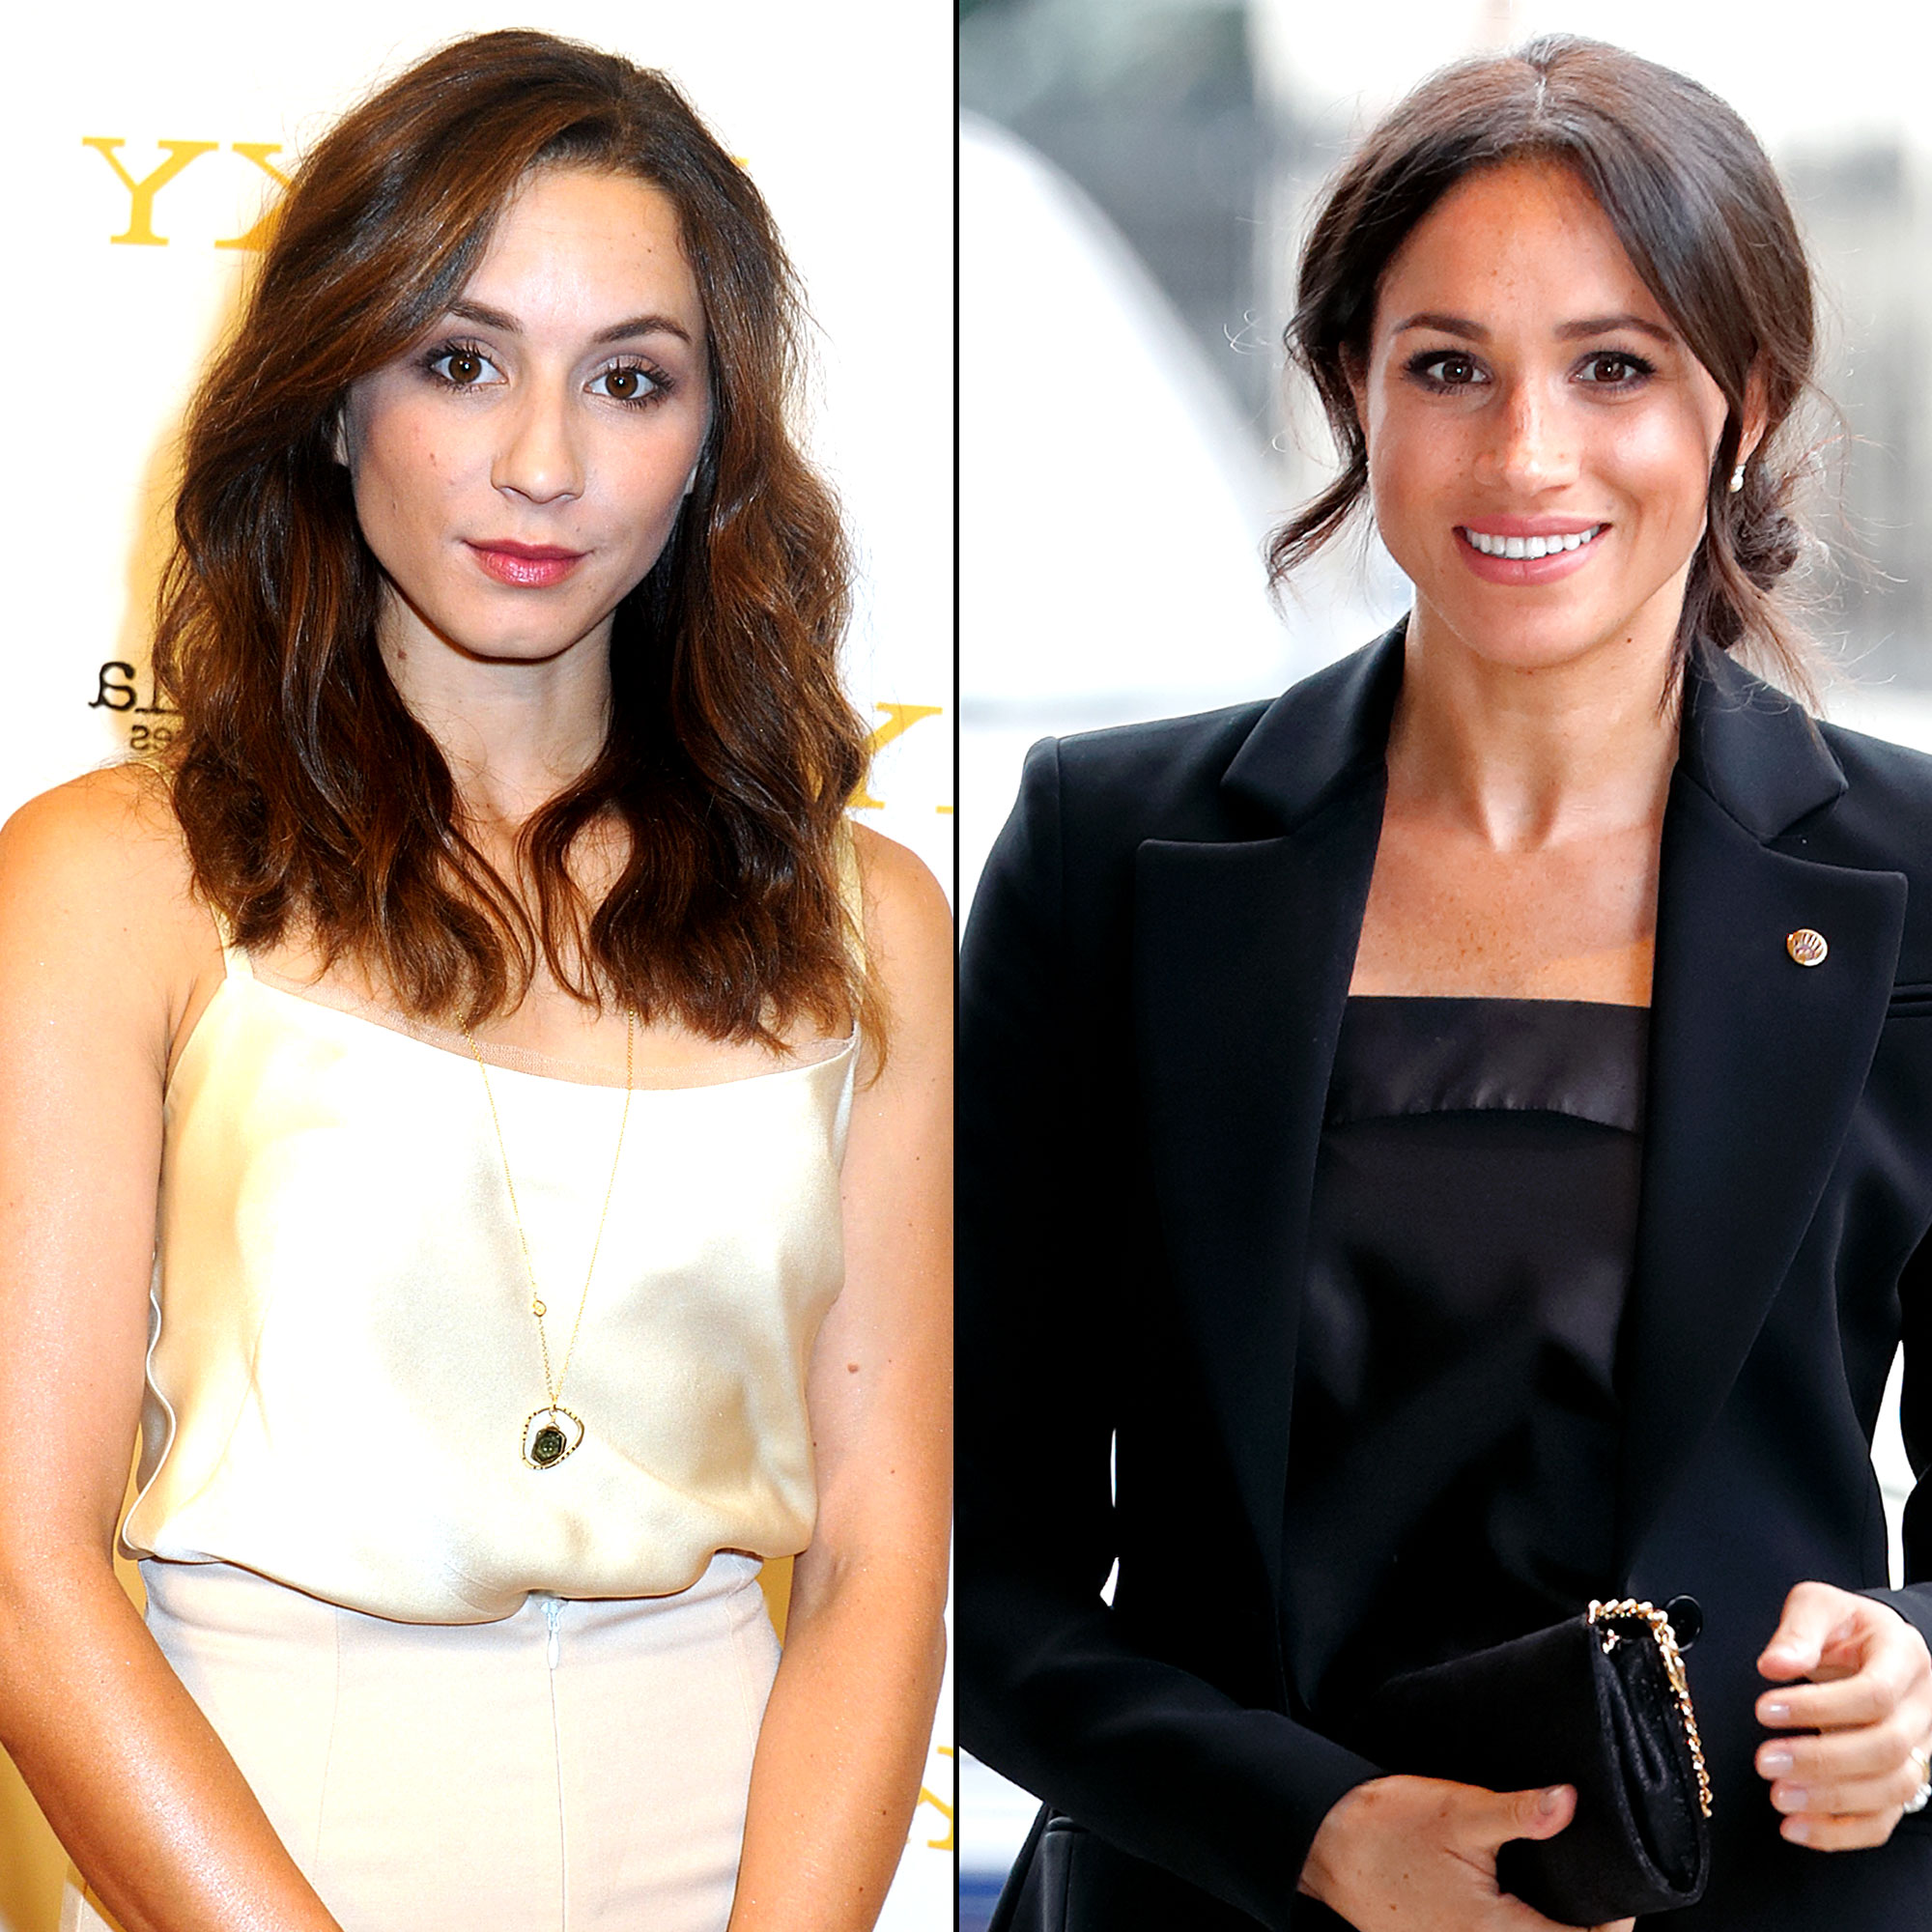 Troian Bellisario Reveals Why She Didn't Send Meghan Markle a Baby Shower Gift - Troian Bellisario and Meghan Markle.